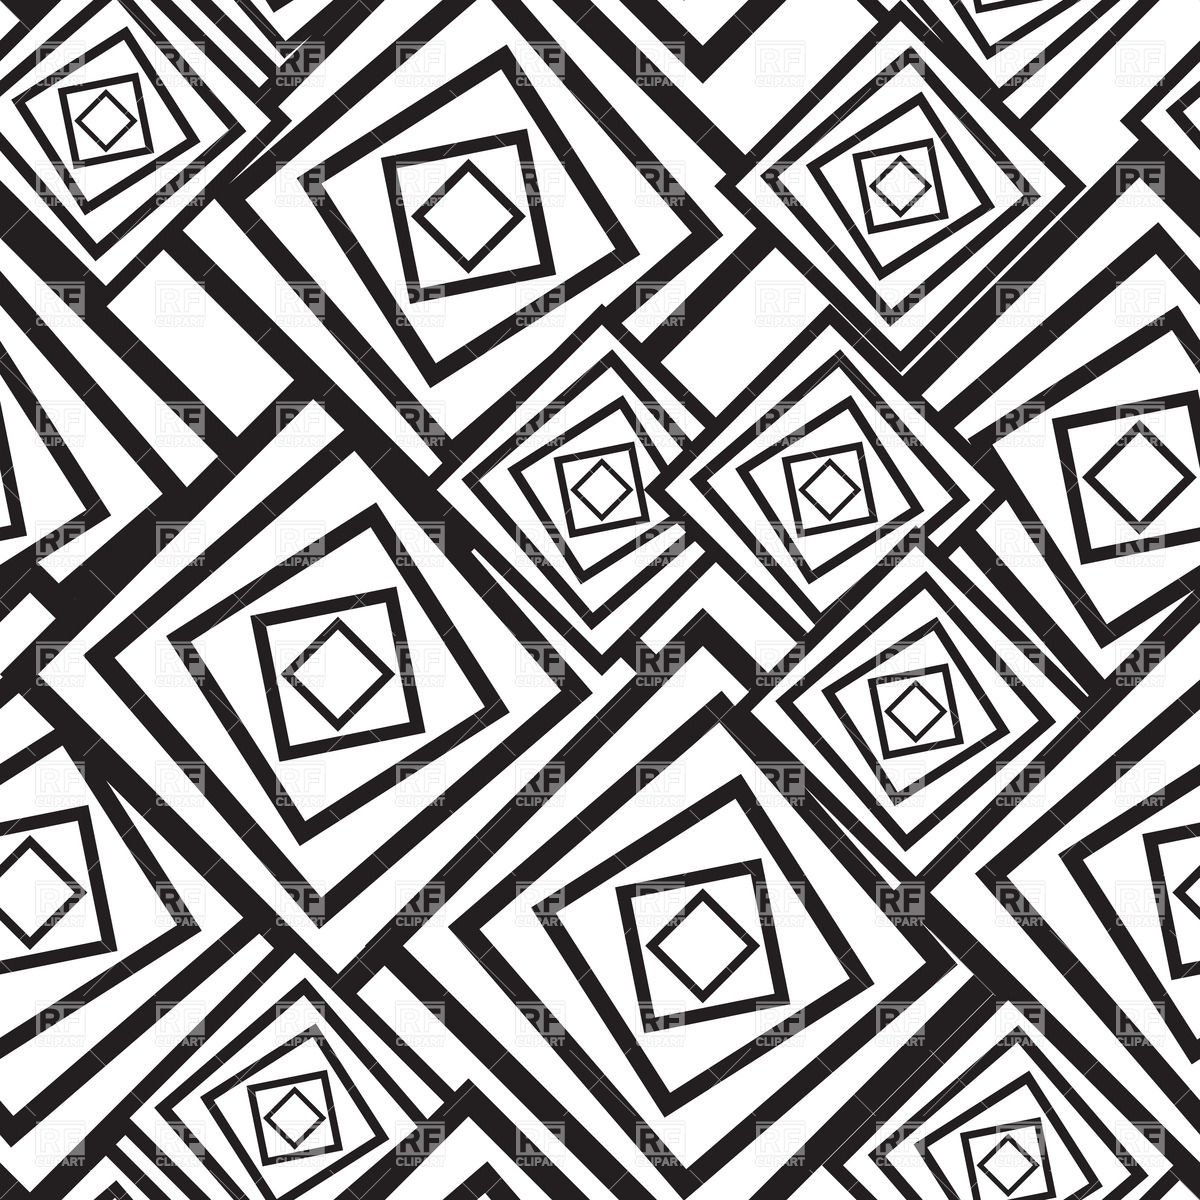 Clipart black and white patterns banner transparent library Square Black And White Quilt Clipart - Clipart Kid banner transparent library